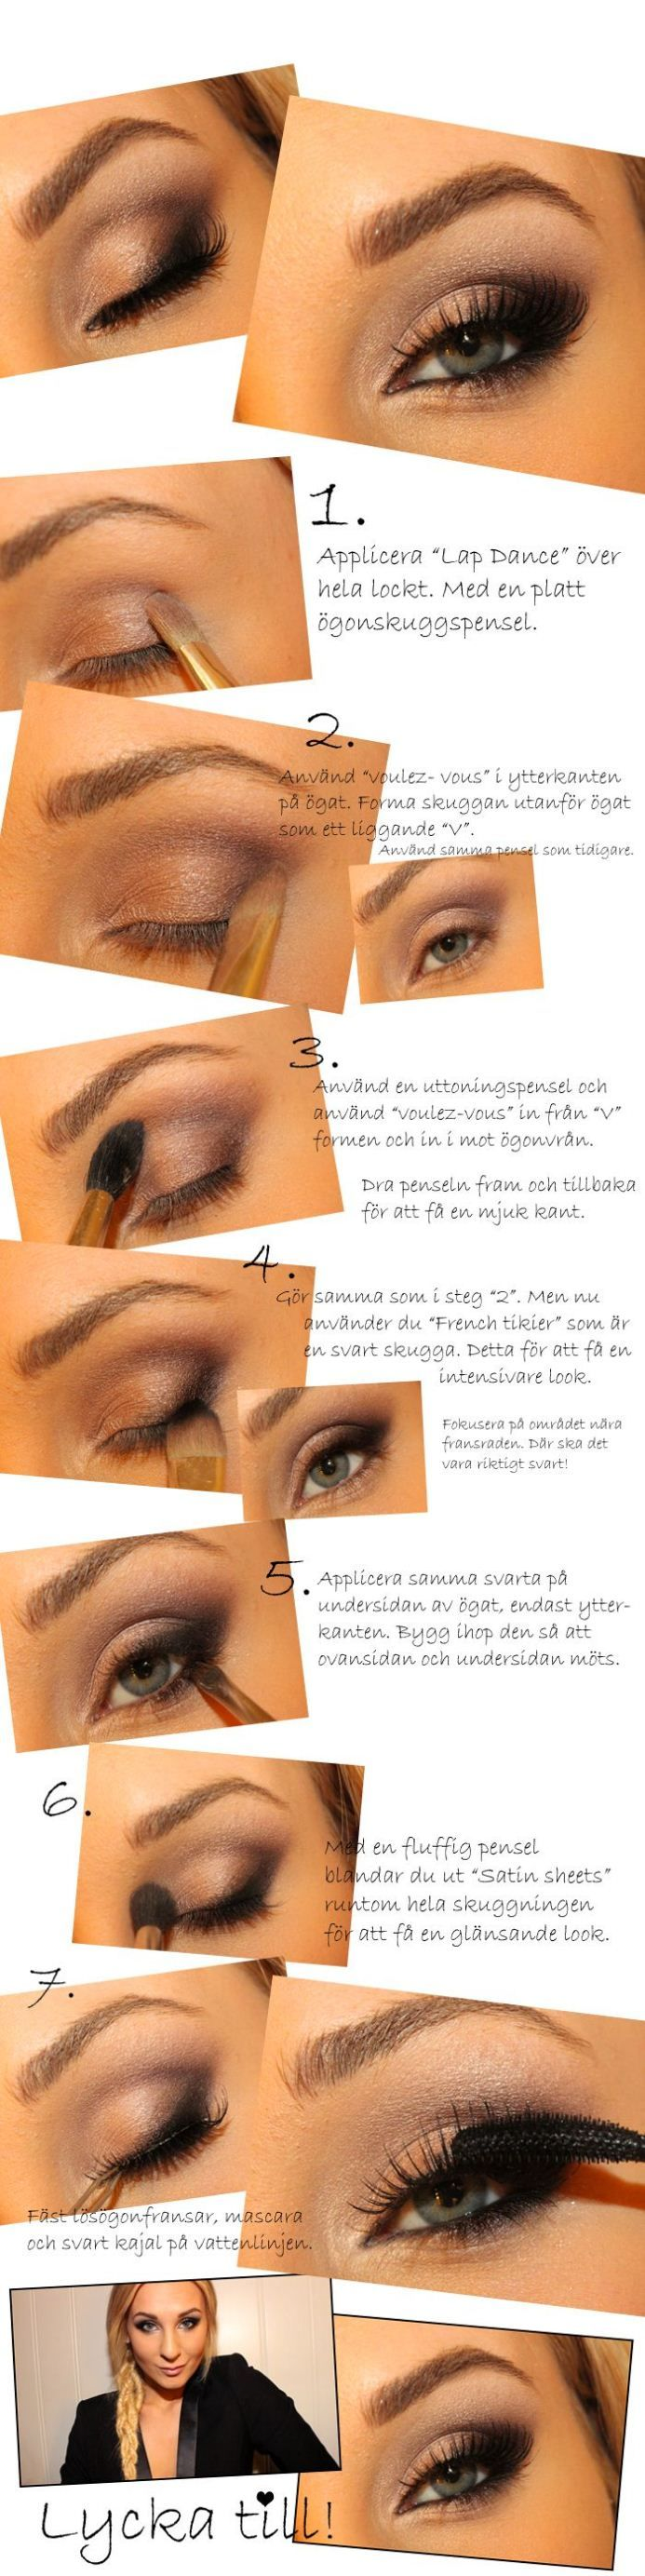 Too Faced Boudoir Eyes Palette Tutorial | In another language, but the diagrams and color names make it usable.